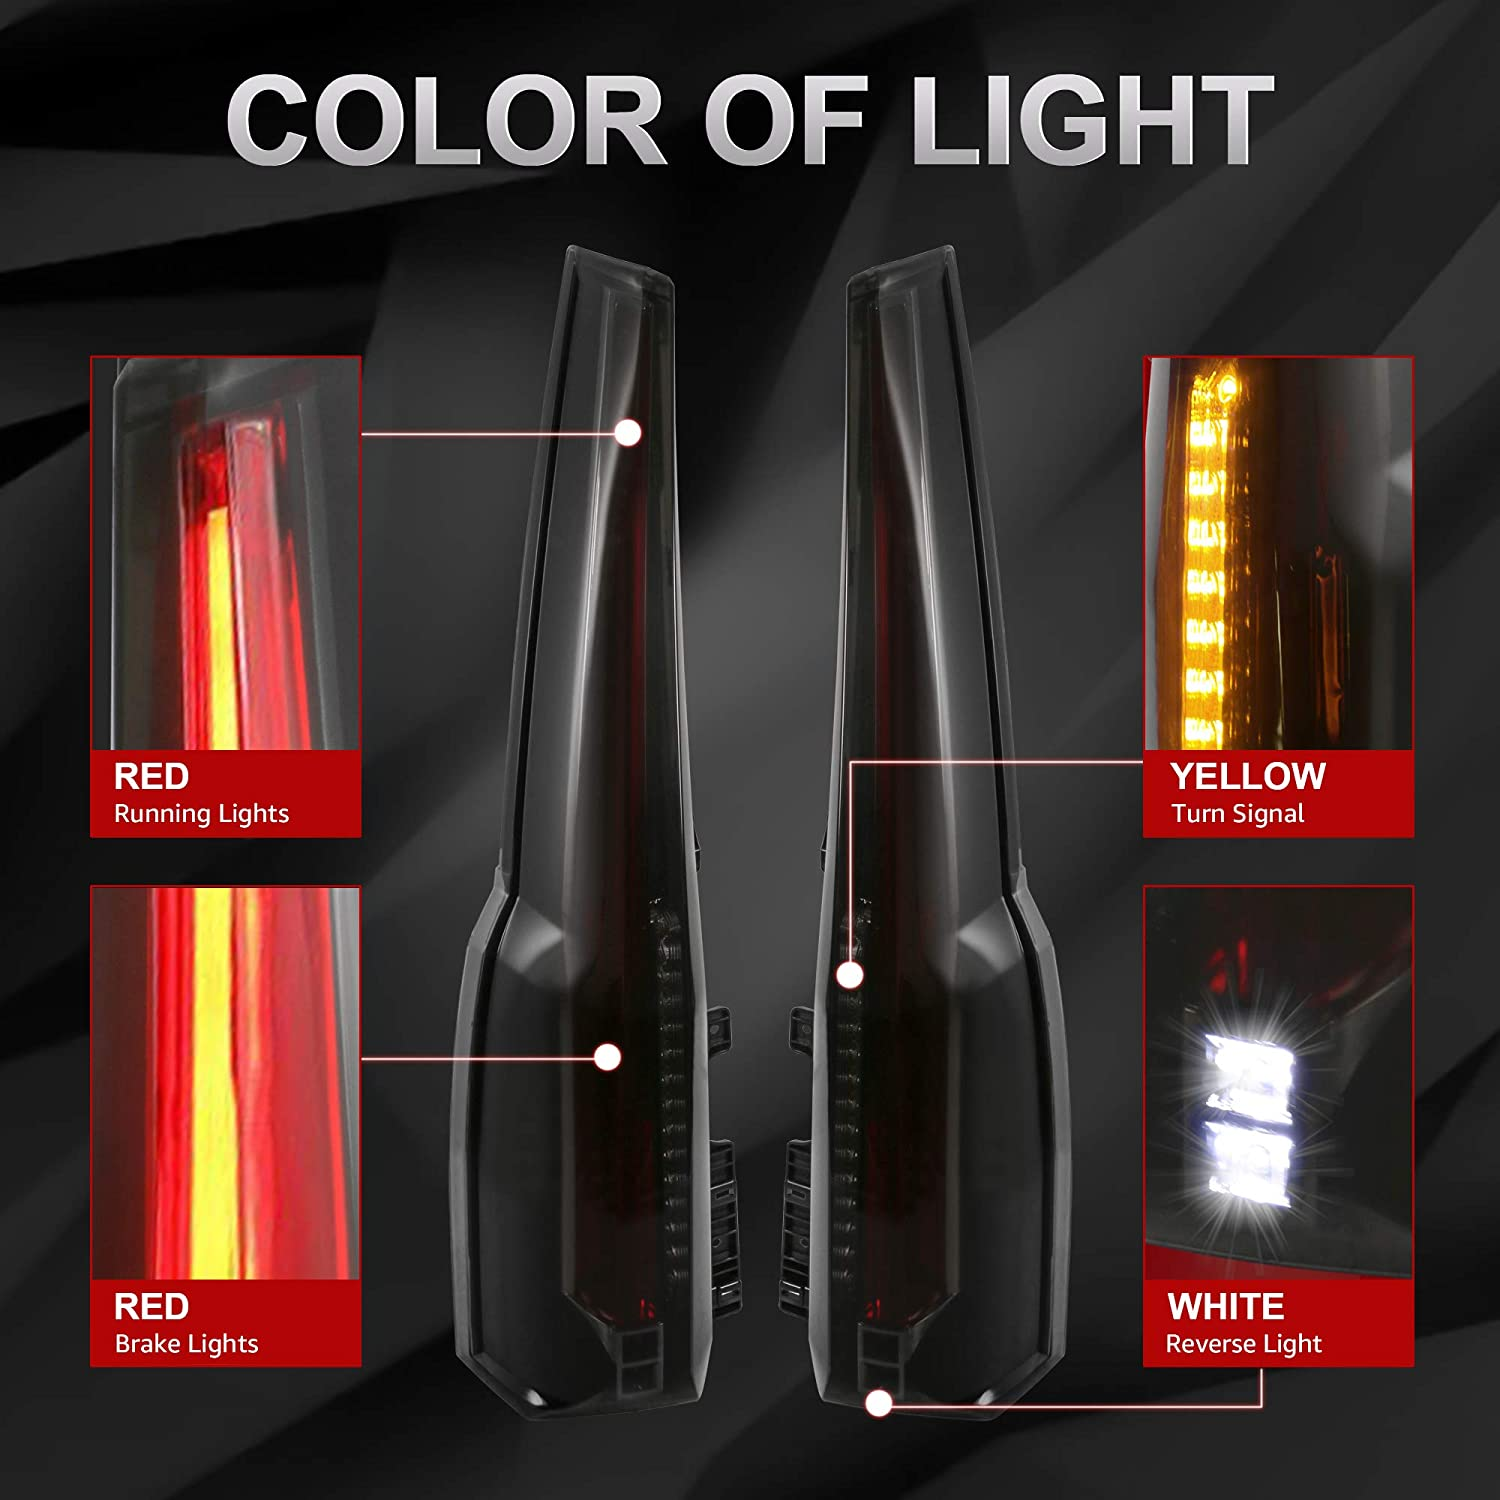 Smock Tinted MOSTPLUS LED Tail Lights Rear Lamp Brake Compatible for 2015 2016 2017 2018 2019 GMC Yukon Cadillac Style Set of 2